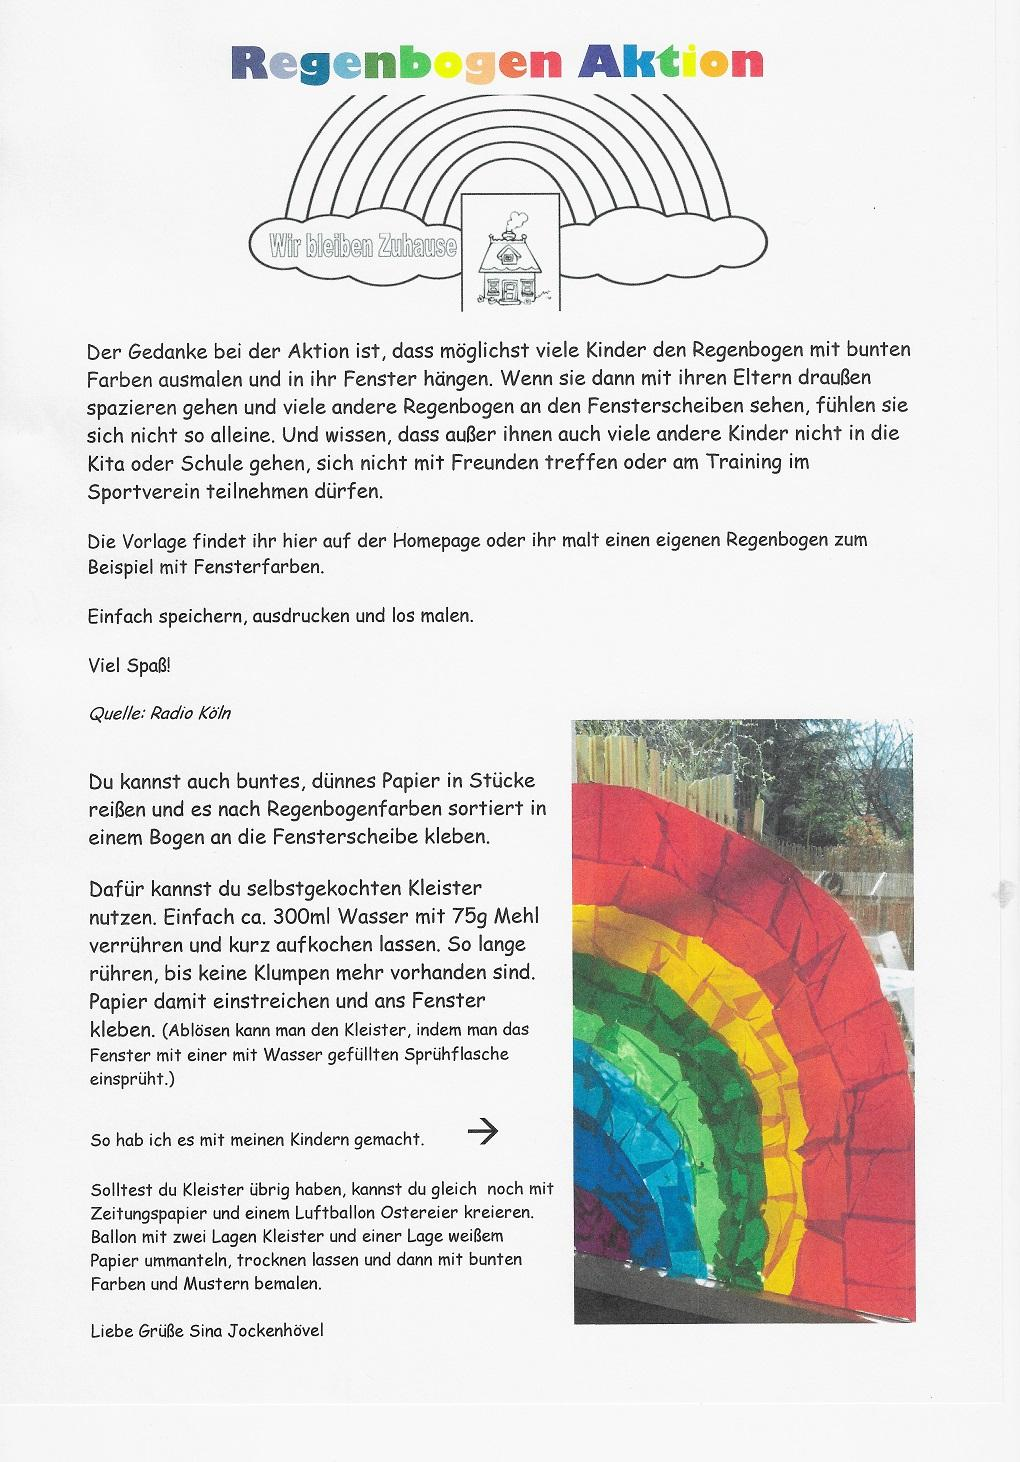 Aktion Regenbogen